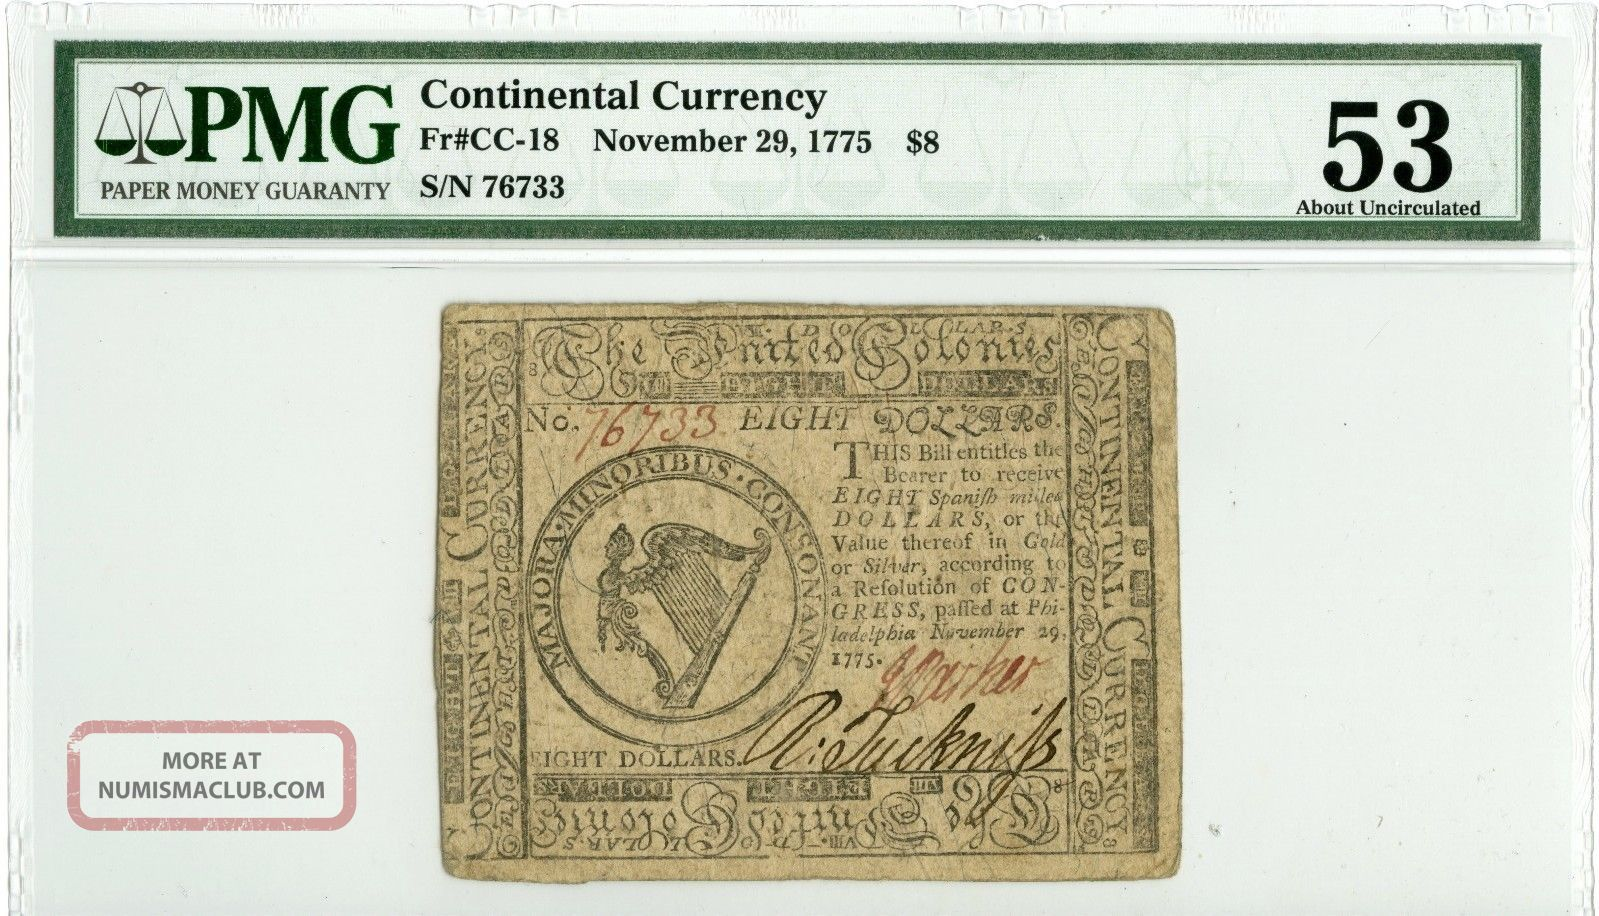 Fr Cc - 18 Continental Currency 1775 Pmg Au53 Paper Money: US photo